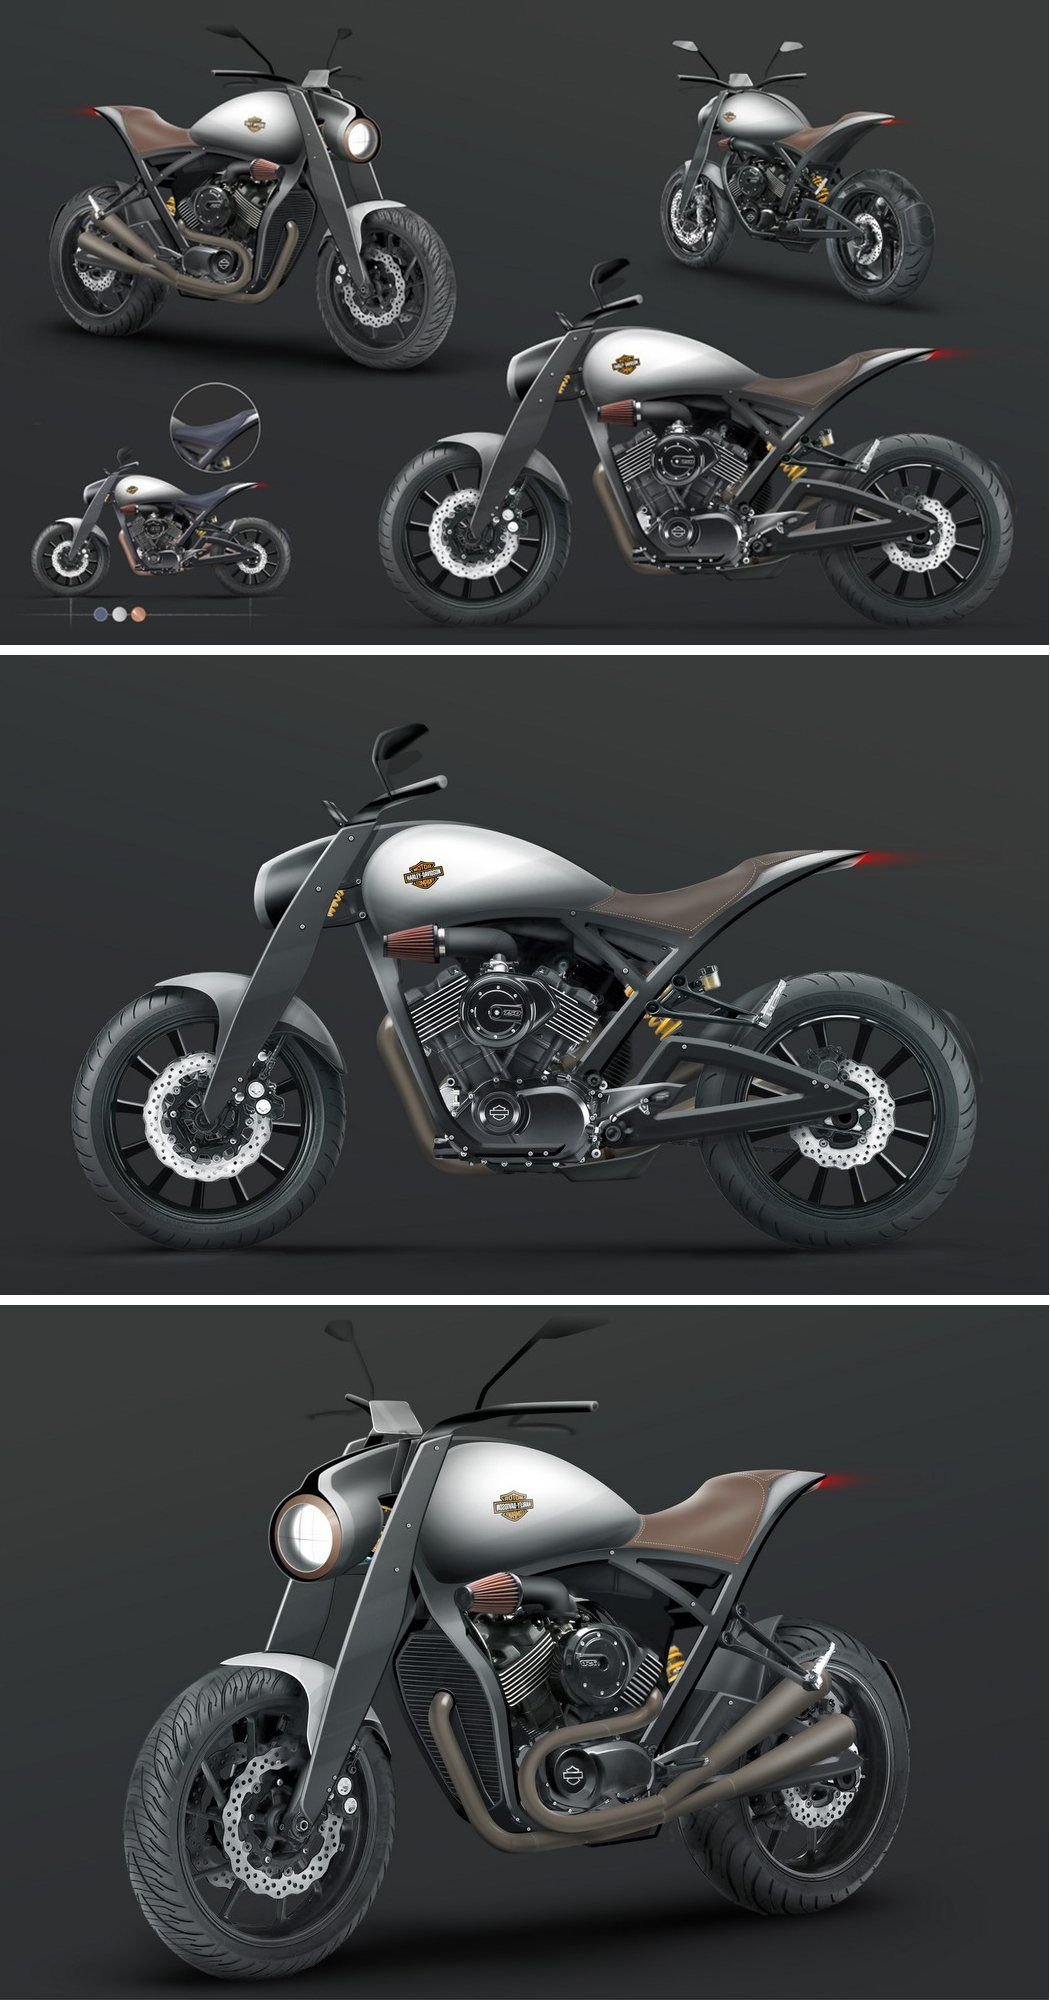 No Harley Davidson Doesn T Make Too Many Standard Bikes Yes They Totally Should Harley Davidson Harley Motorcycle Design